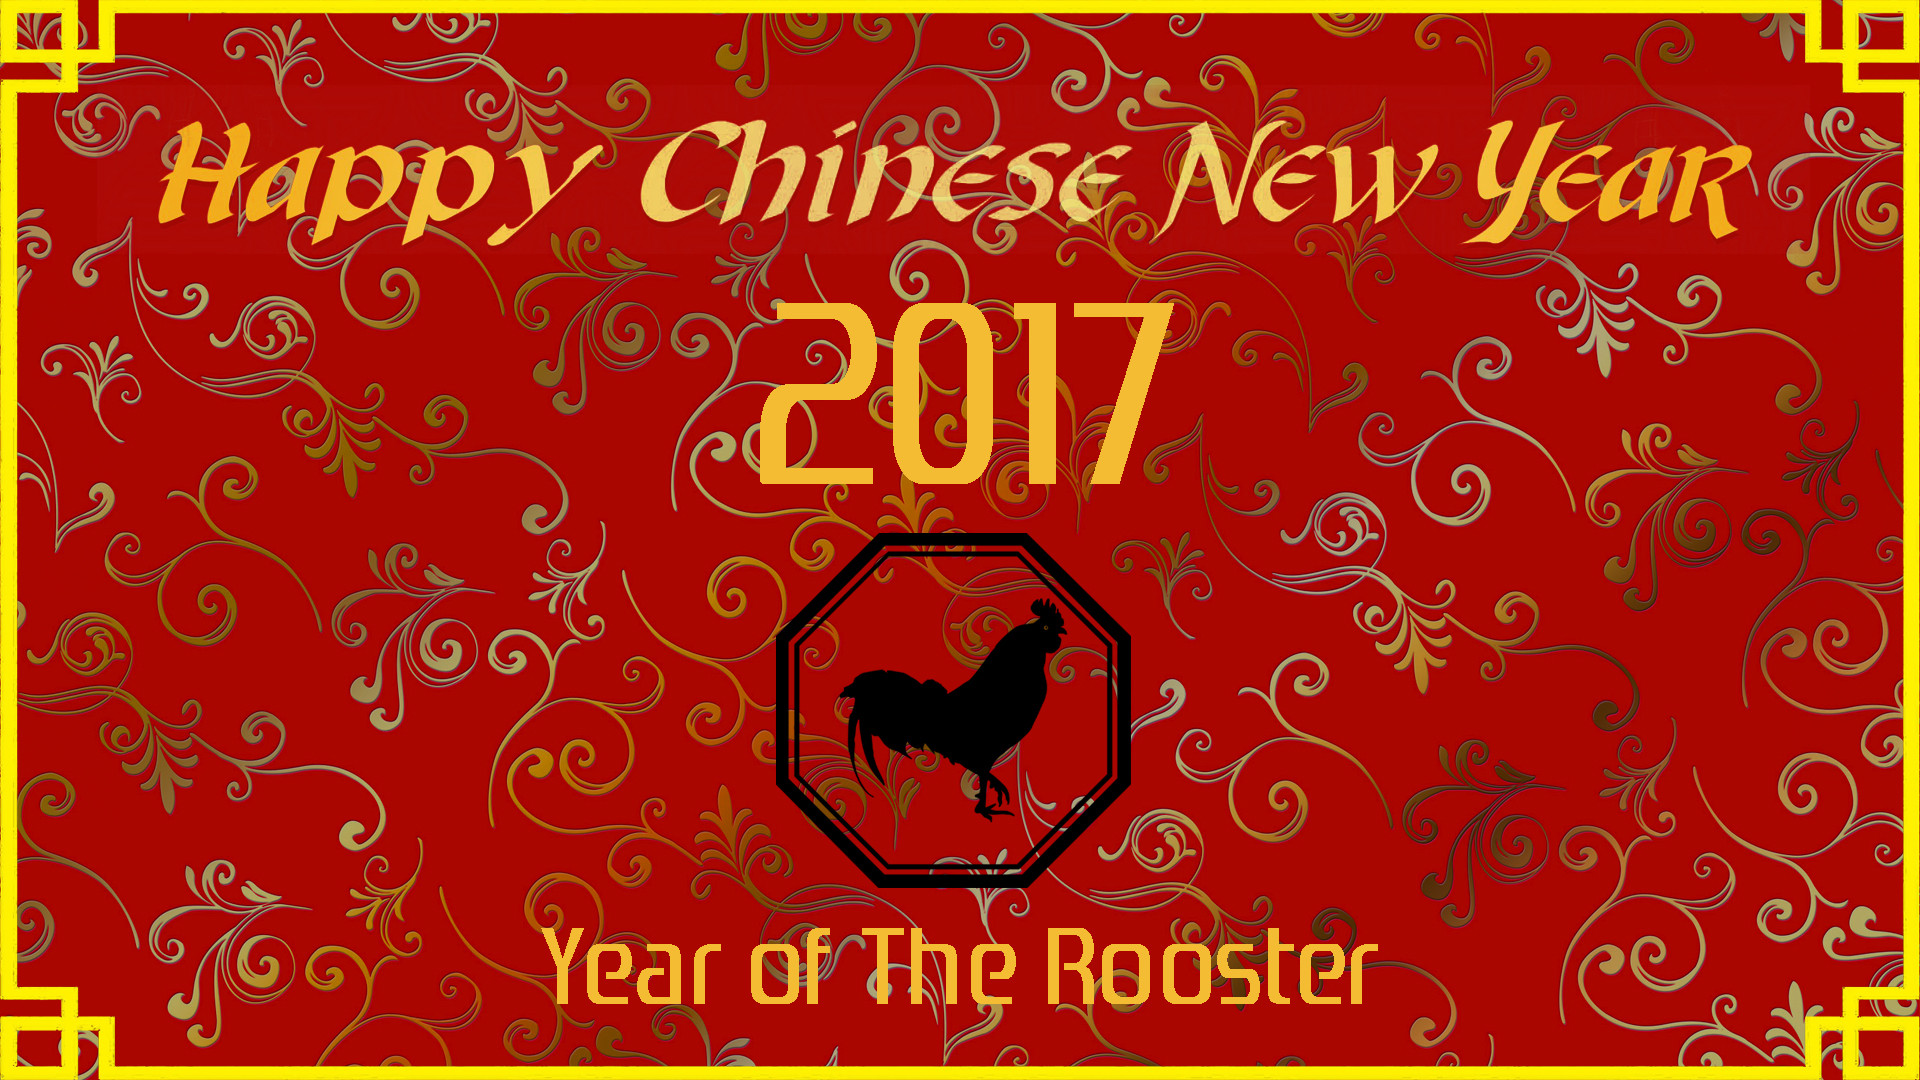 2500x1600 free hd happy chinese new year 2017 images wallpapers photos pictures merry christmas happy new year 2018 wishes greetings images